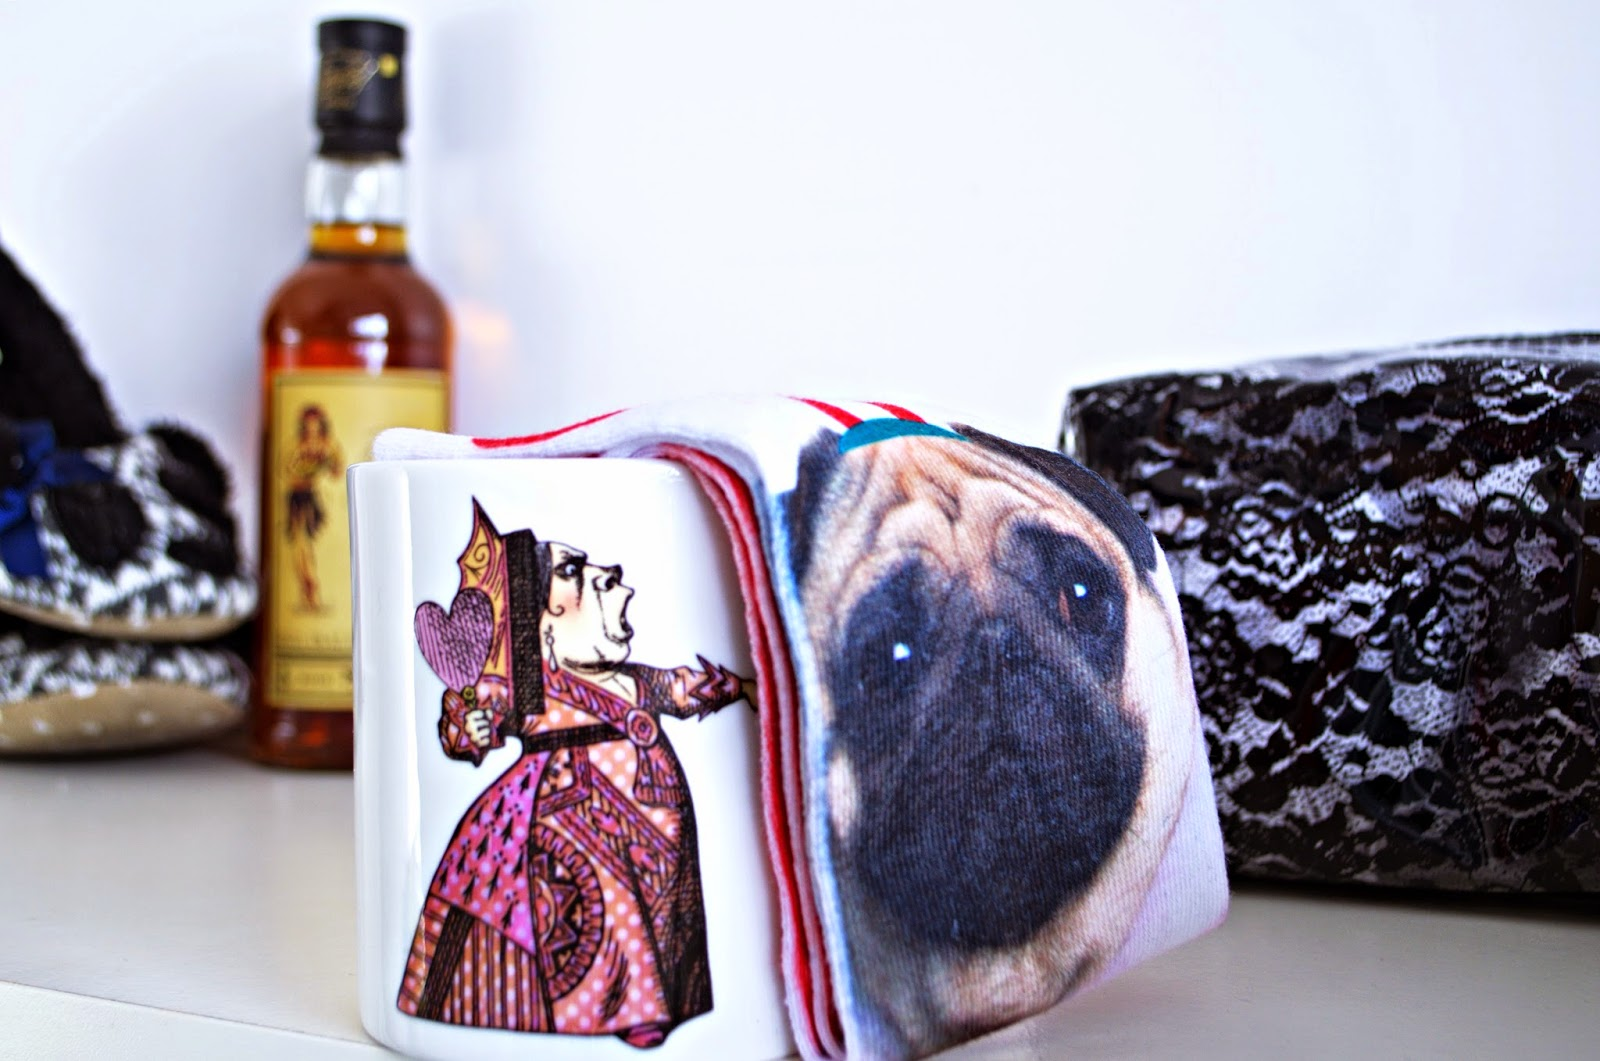 Alice in Wonderland mug, Primark Christmas Pug Socks, slippers, Sailor Jerry's Spiced Rum, lace make-up bag. Christmas Gift Ideas.